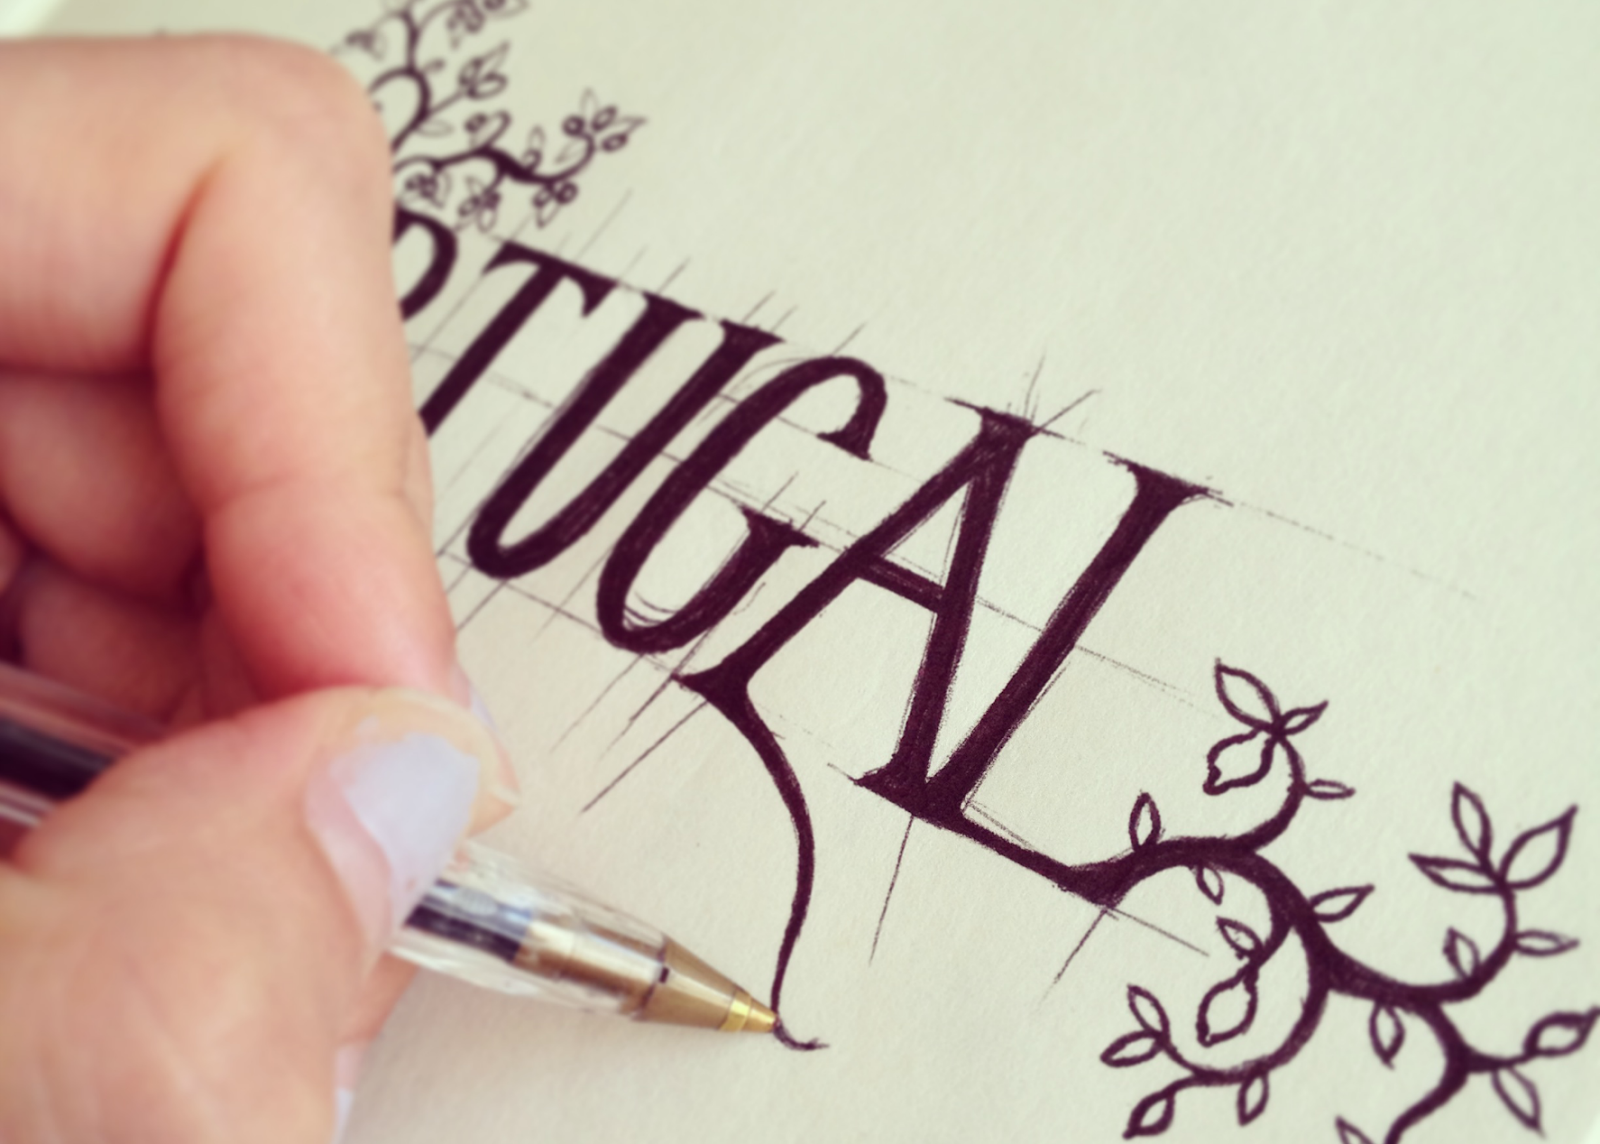 Lettering trees leaves biro sketch